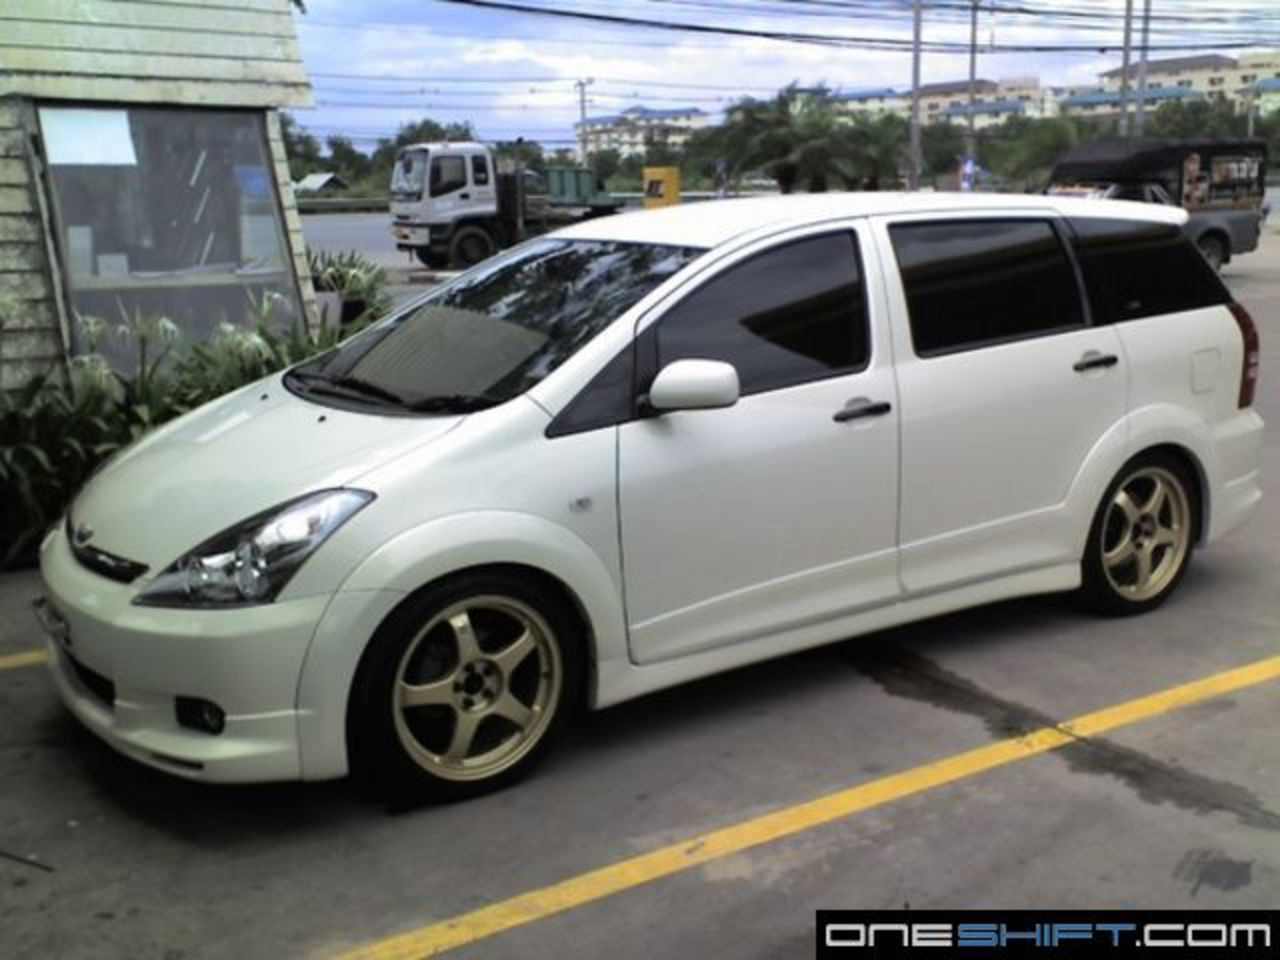 Toyota Wish TRD Sports. View Download Wallpaper. 640x480. Comments